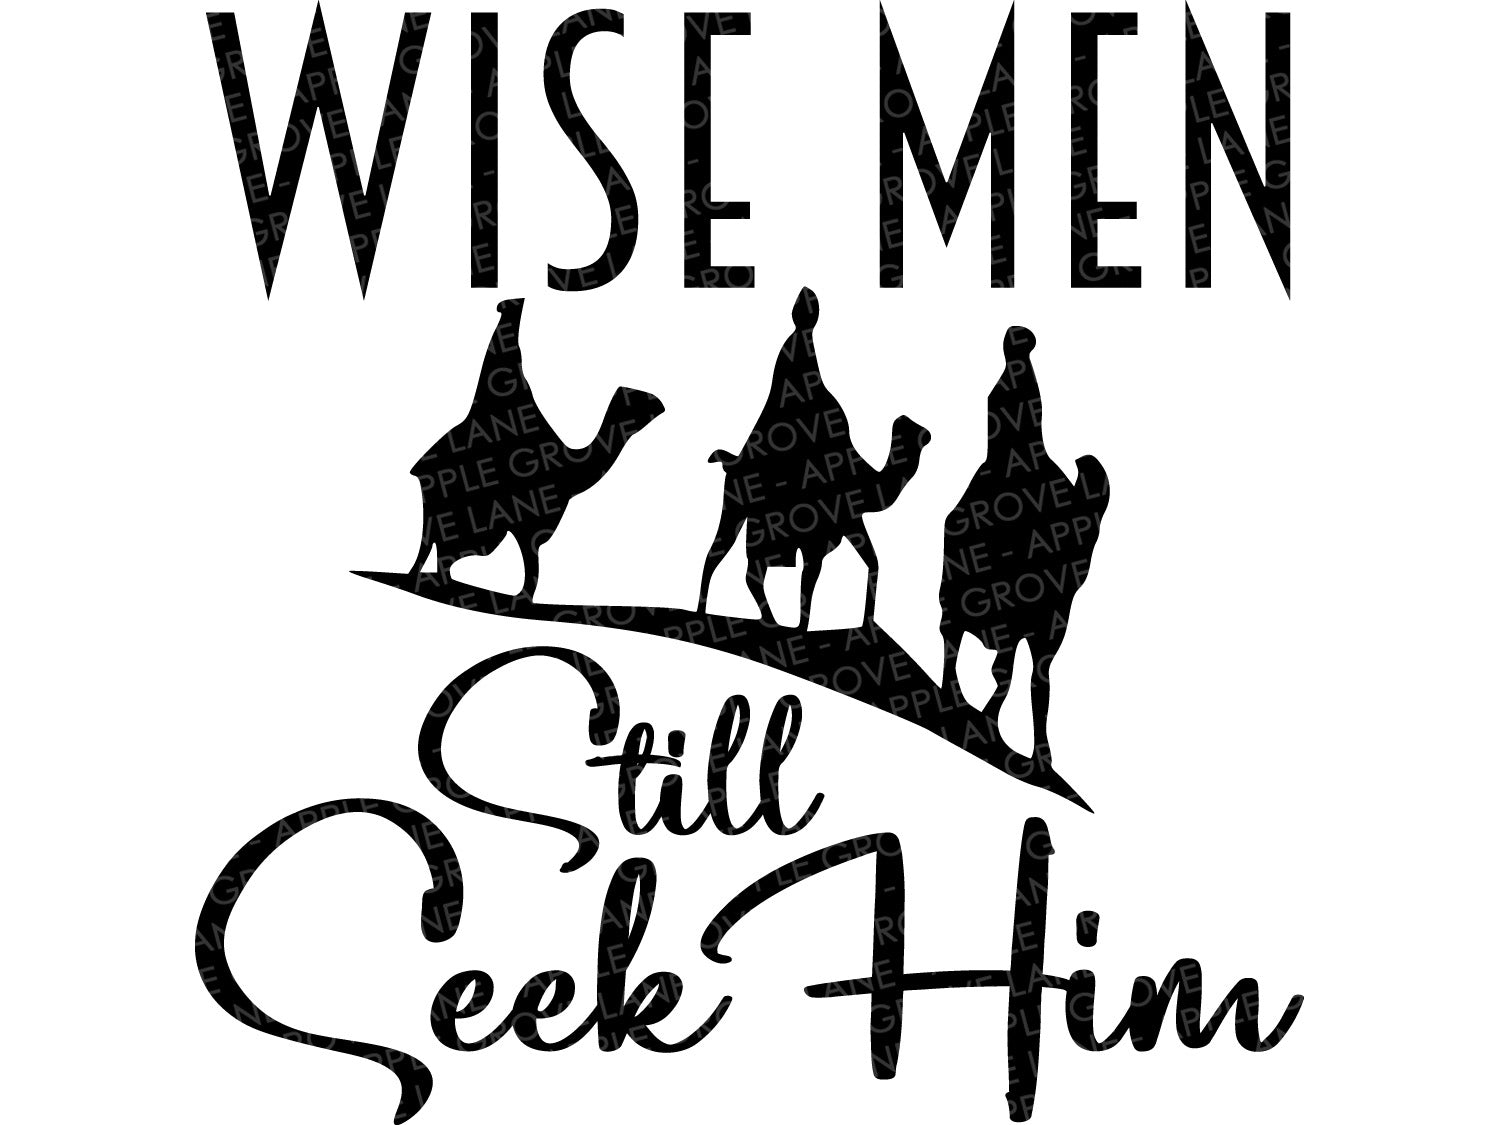 Wise Men Still Seek Him Svg - Nativity Svg - Wise Men Svg - Christmas Svg - Wise Men Clip Art - Faith Svg - Svg Eps Dxf Png